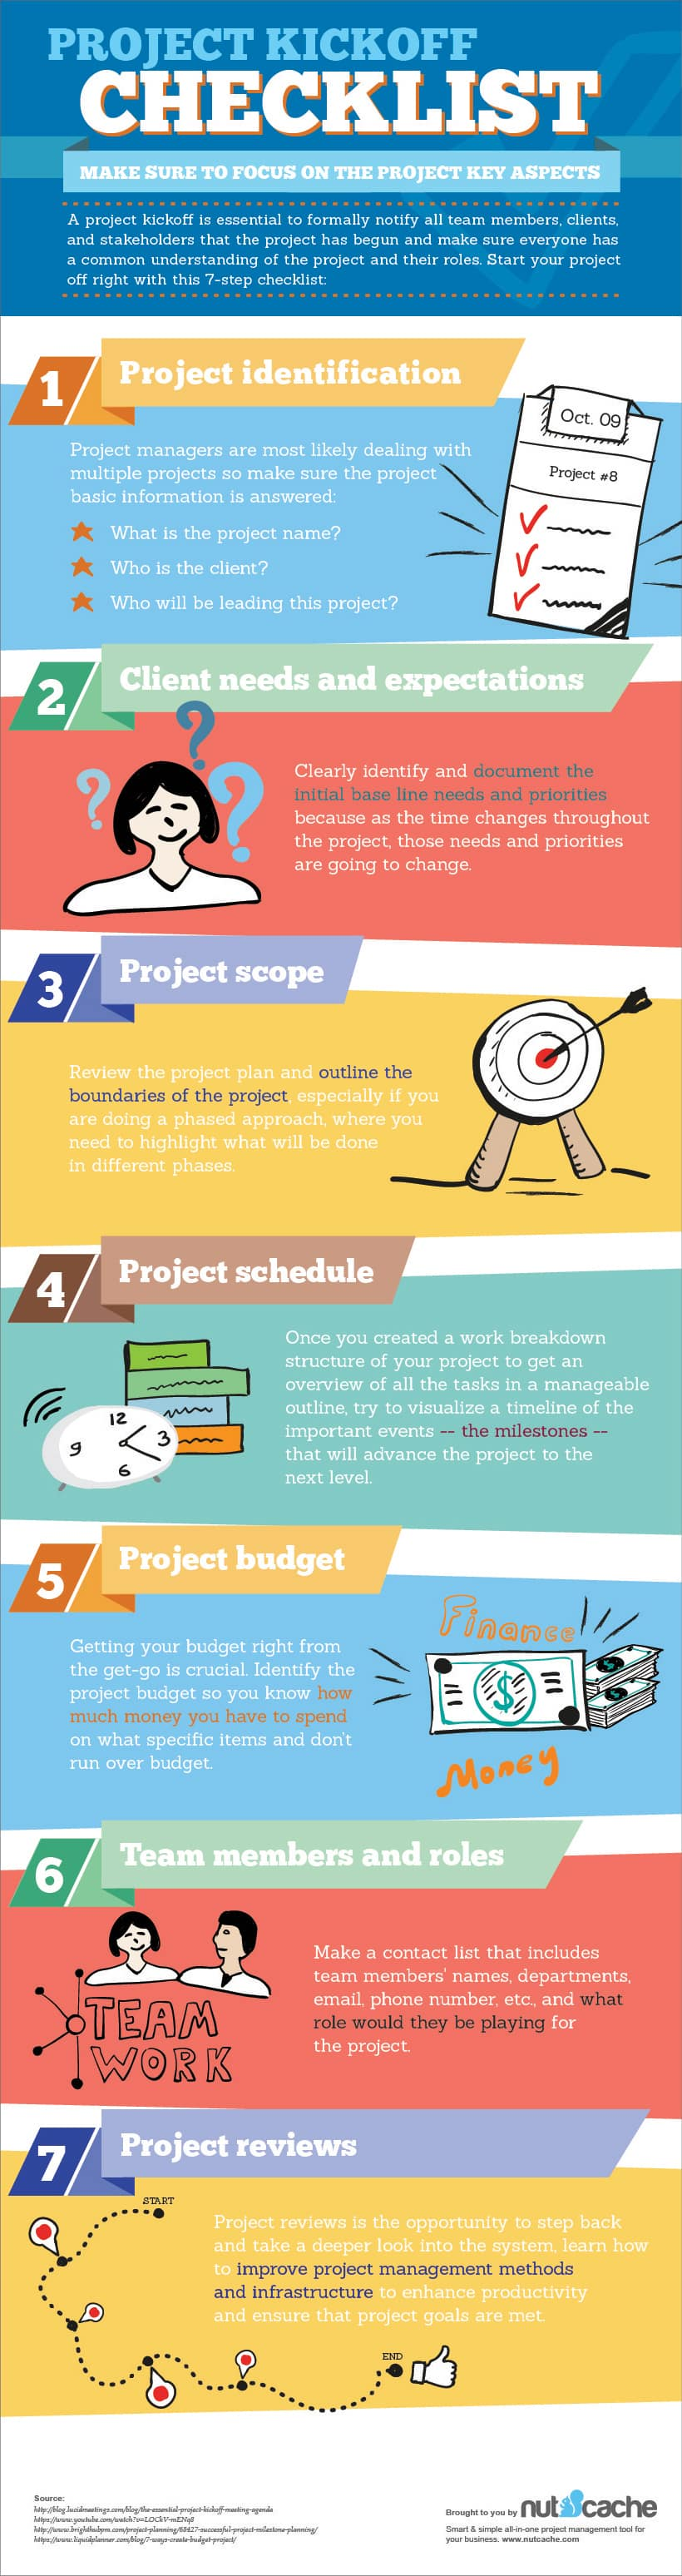 project kickoff checklist infographic